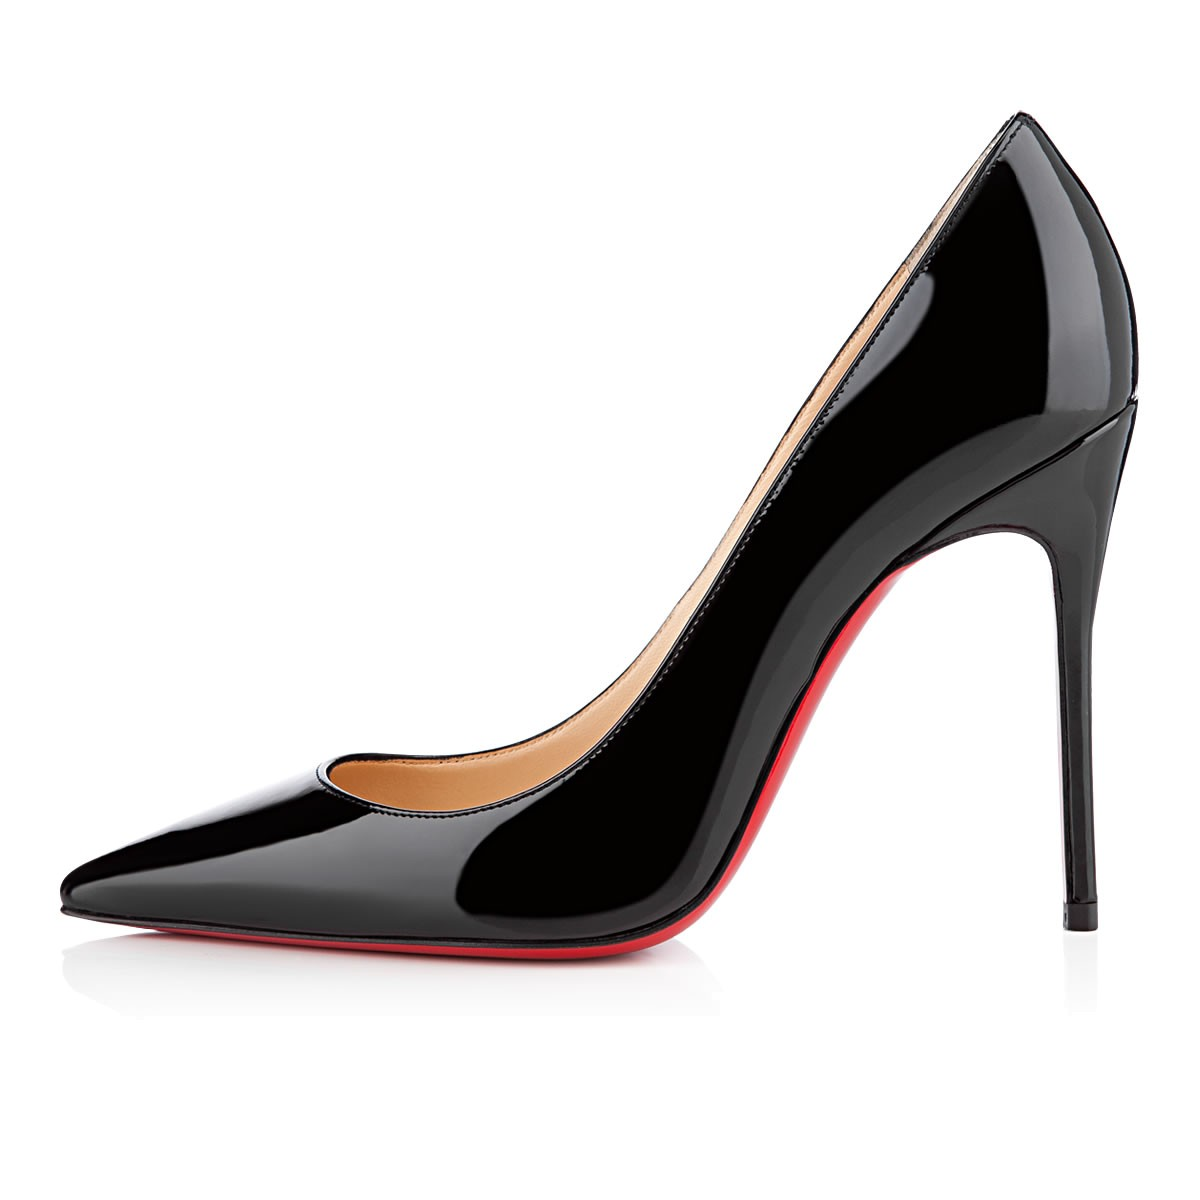 christianlouboutin-decollete554-3120836_bk01_2_1200x1200_3